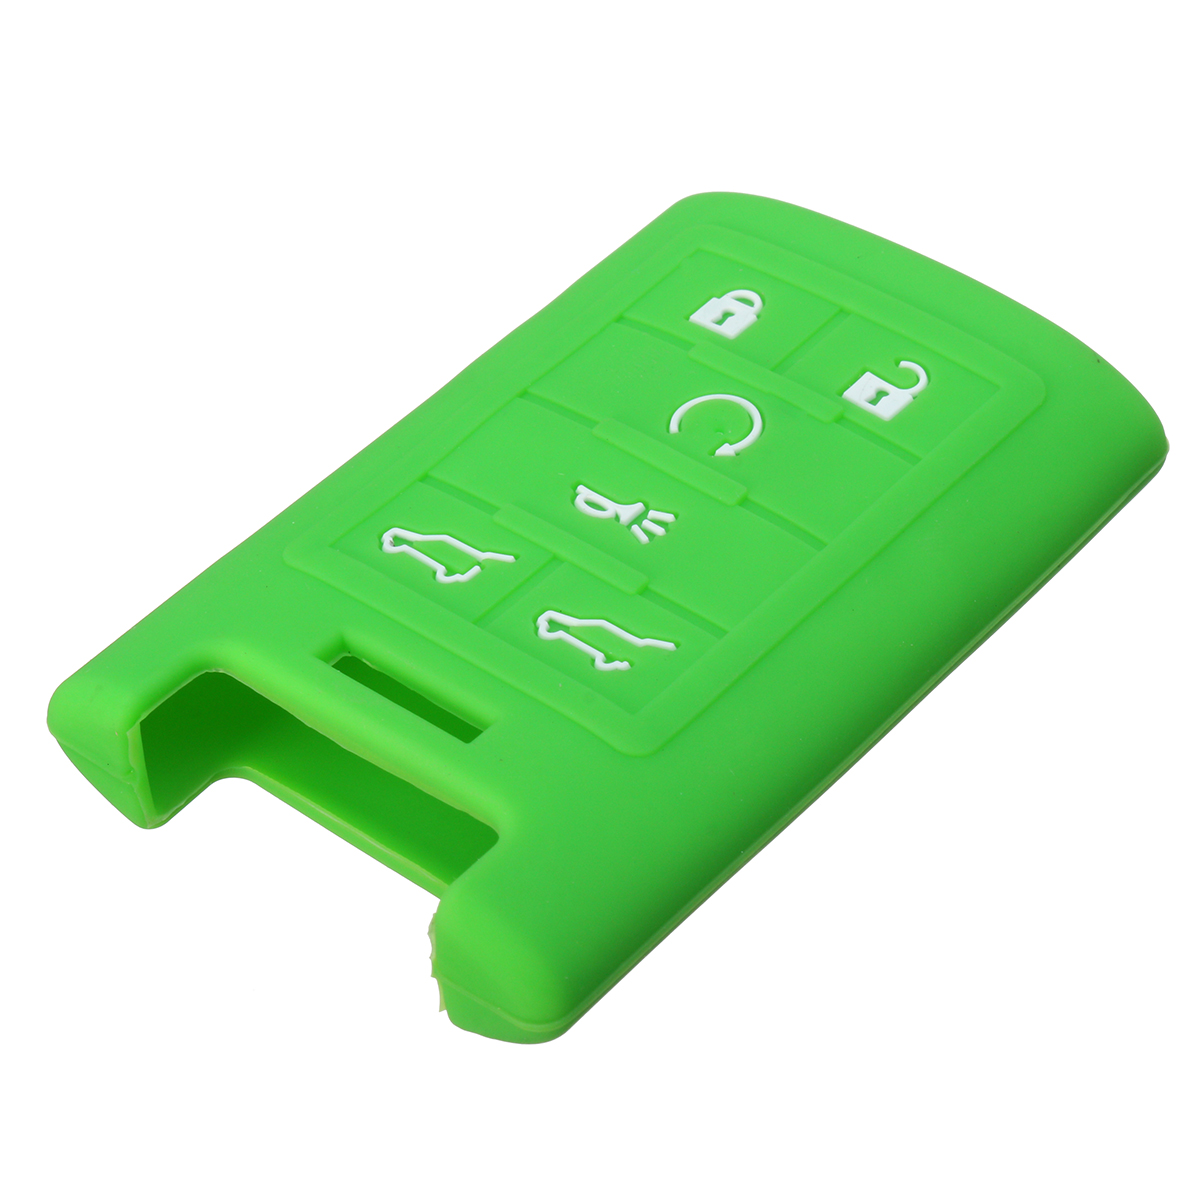 6 Buttons Silicone Remote Key Case Shell Cover Holder For Cadillac CTS Escalade